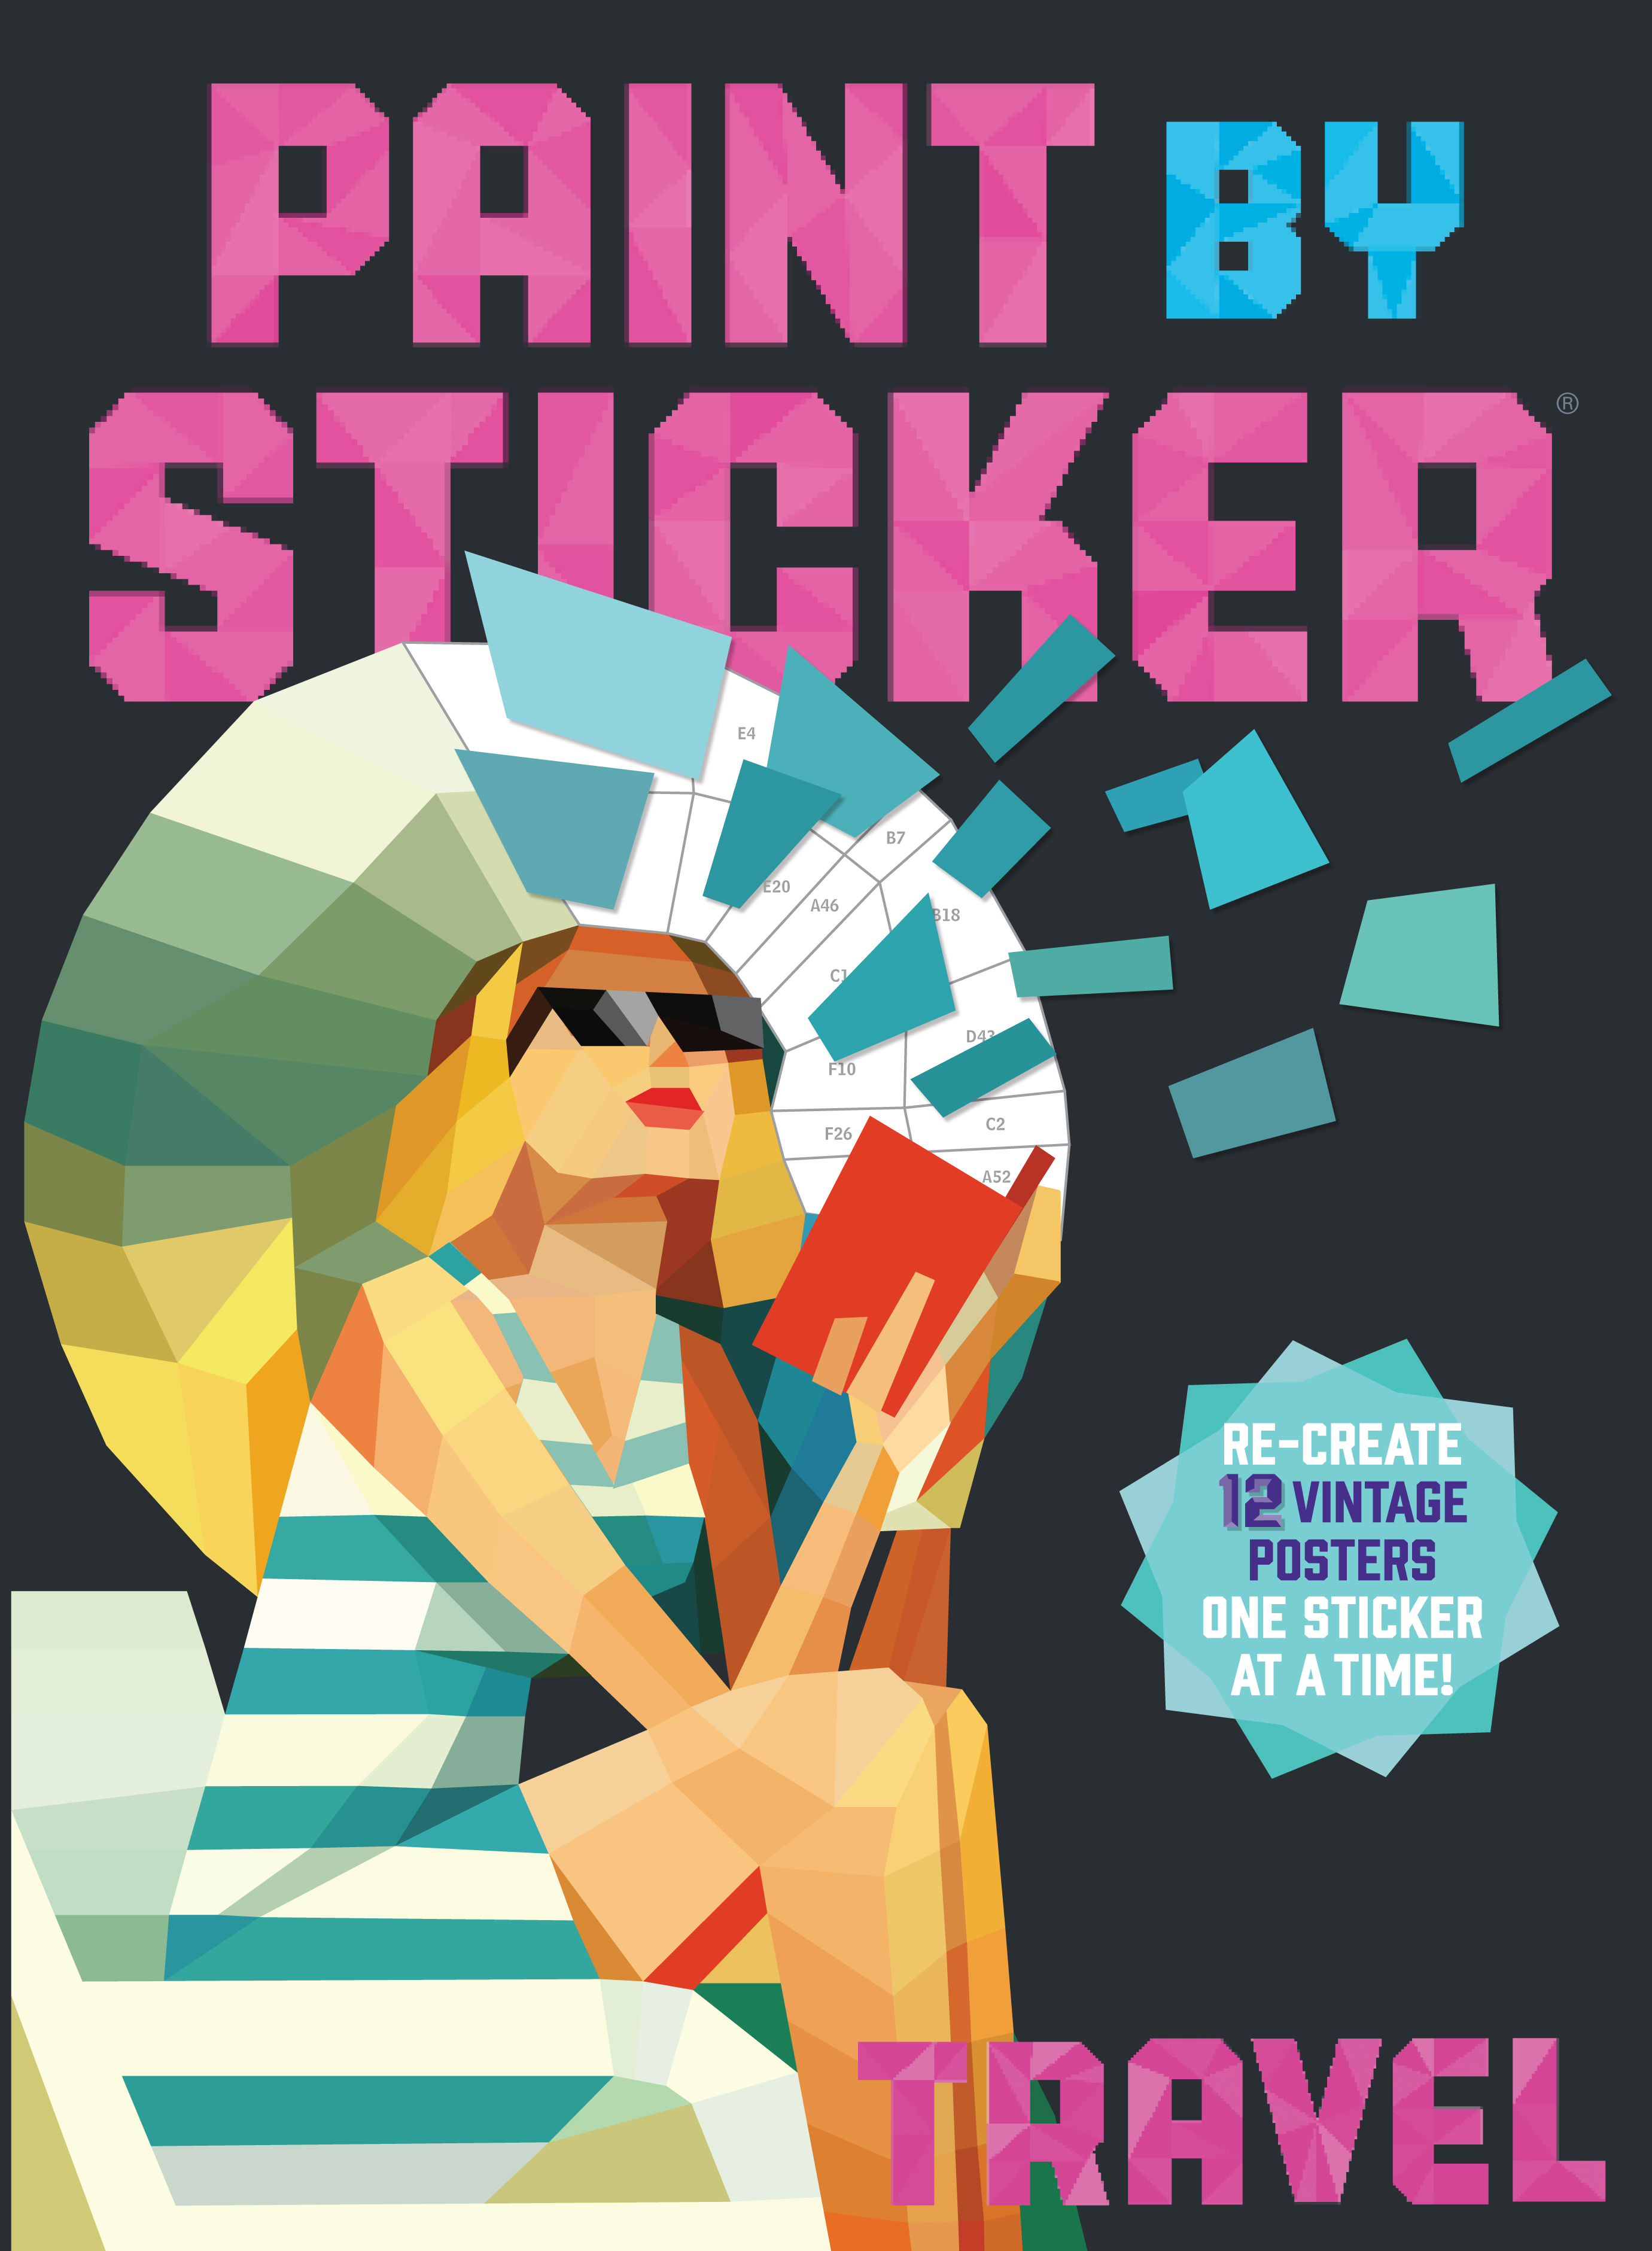 Paint by Sticker: Travel: Re-create 12 Vintage Posters One Sticker at a Time!